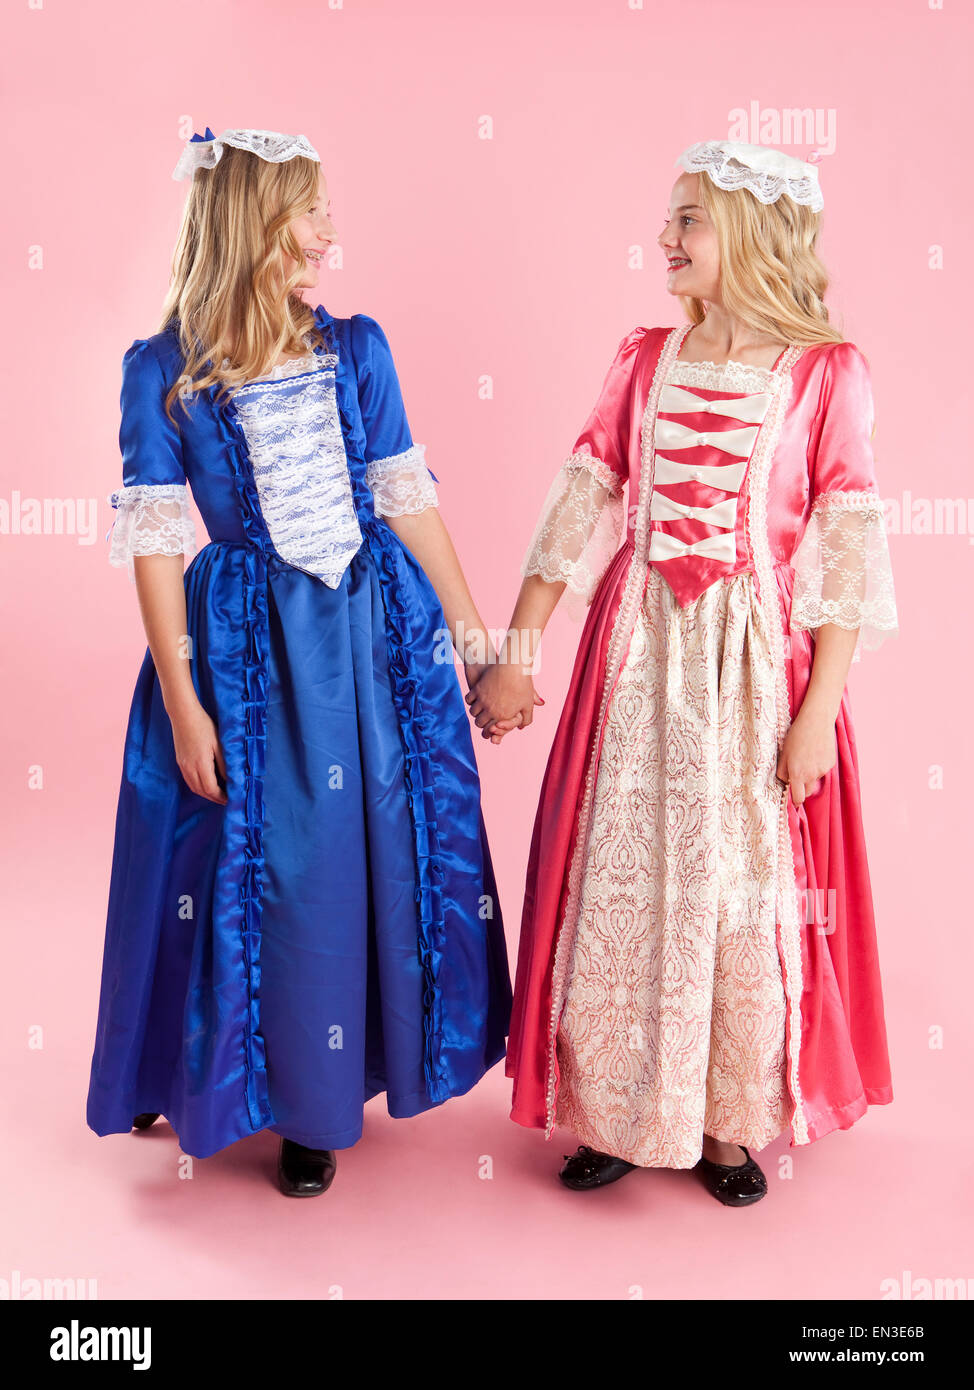 Two girls (10-11) in colonial princess dresses for Halloween - Stock Image